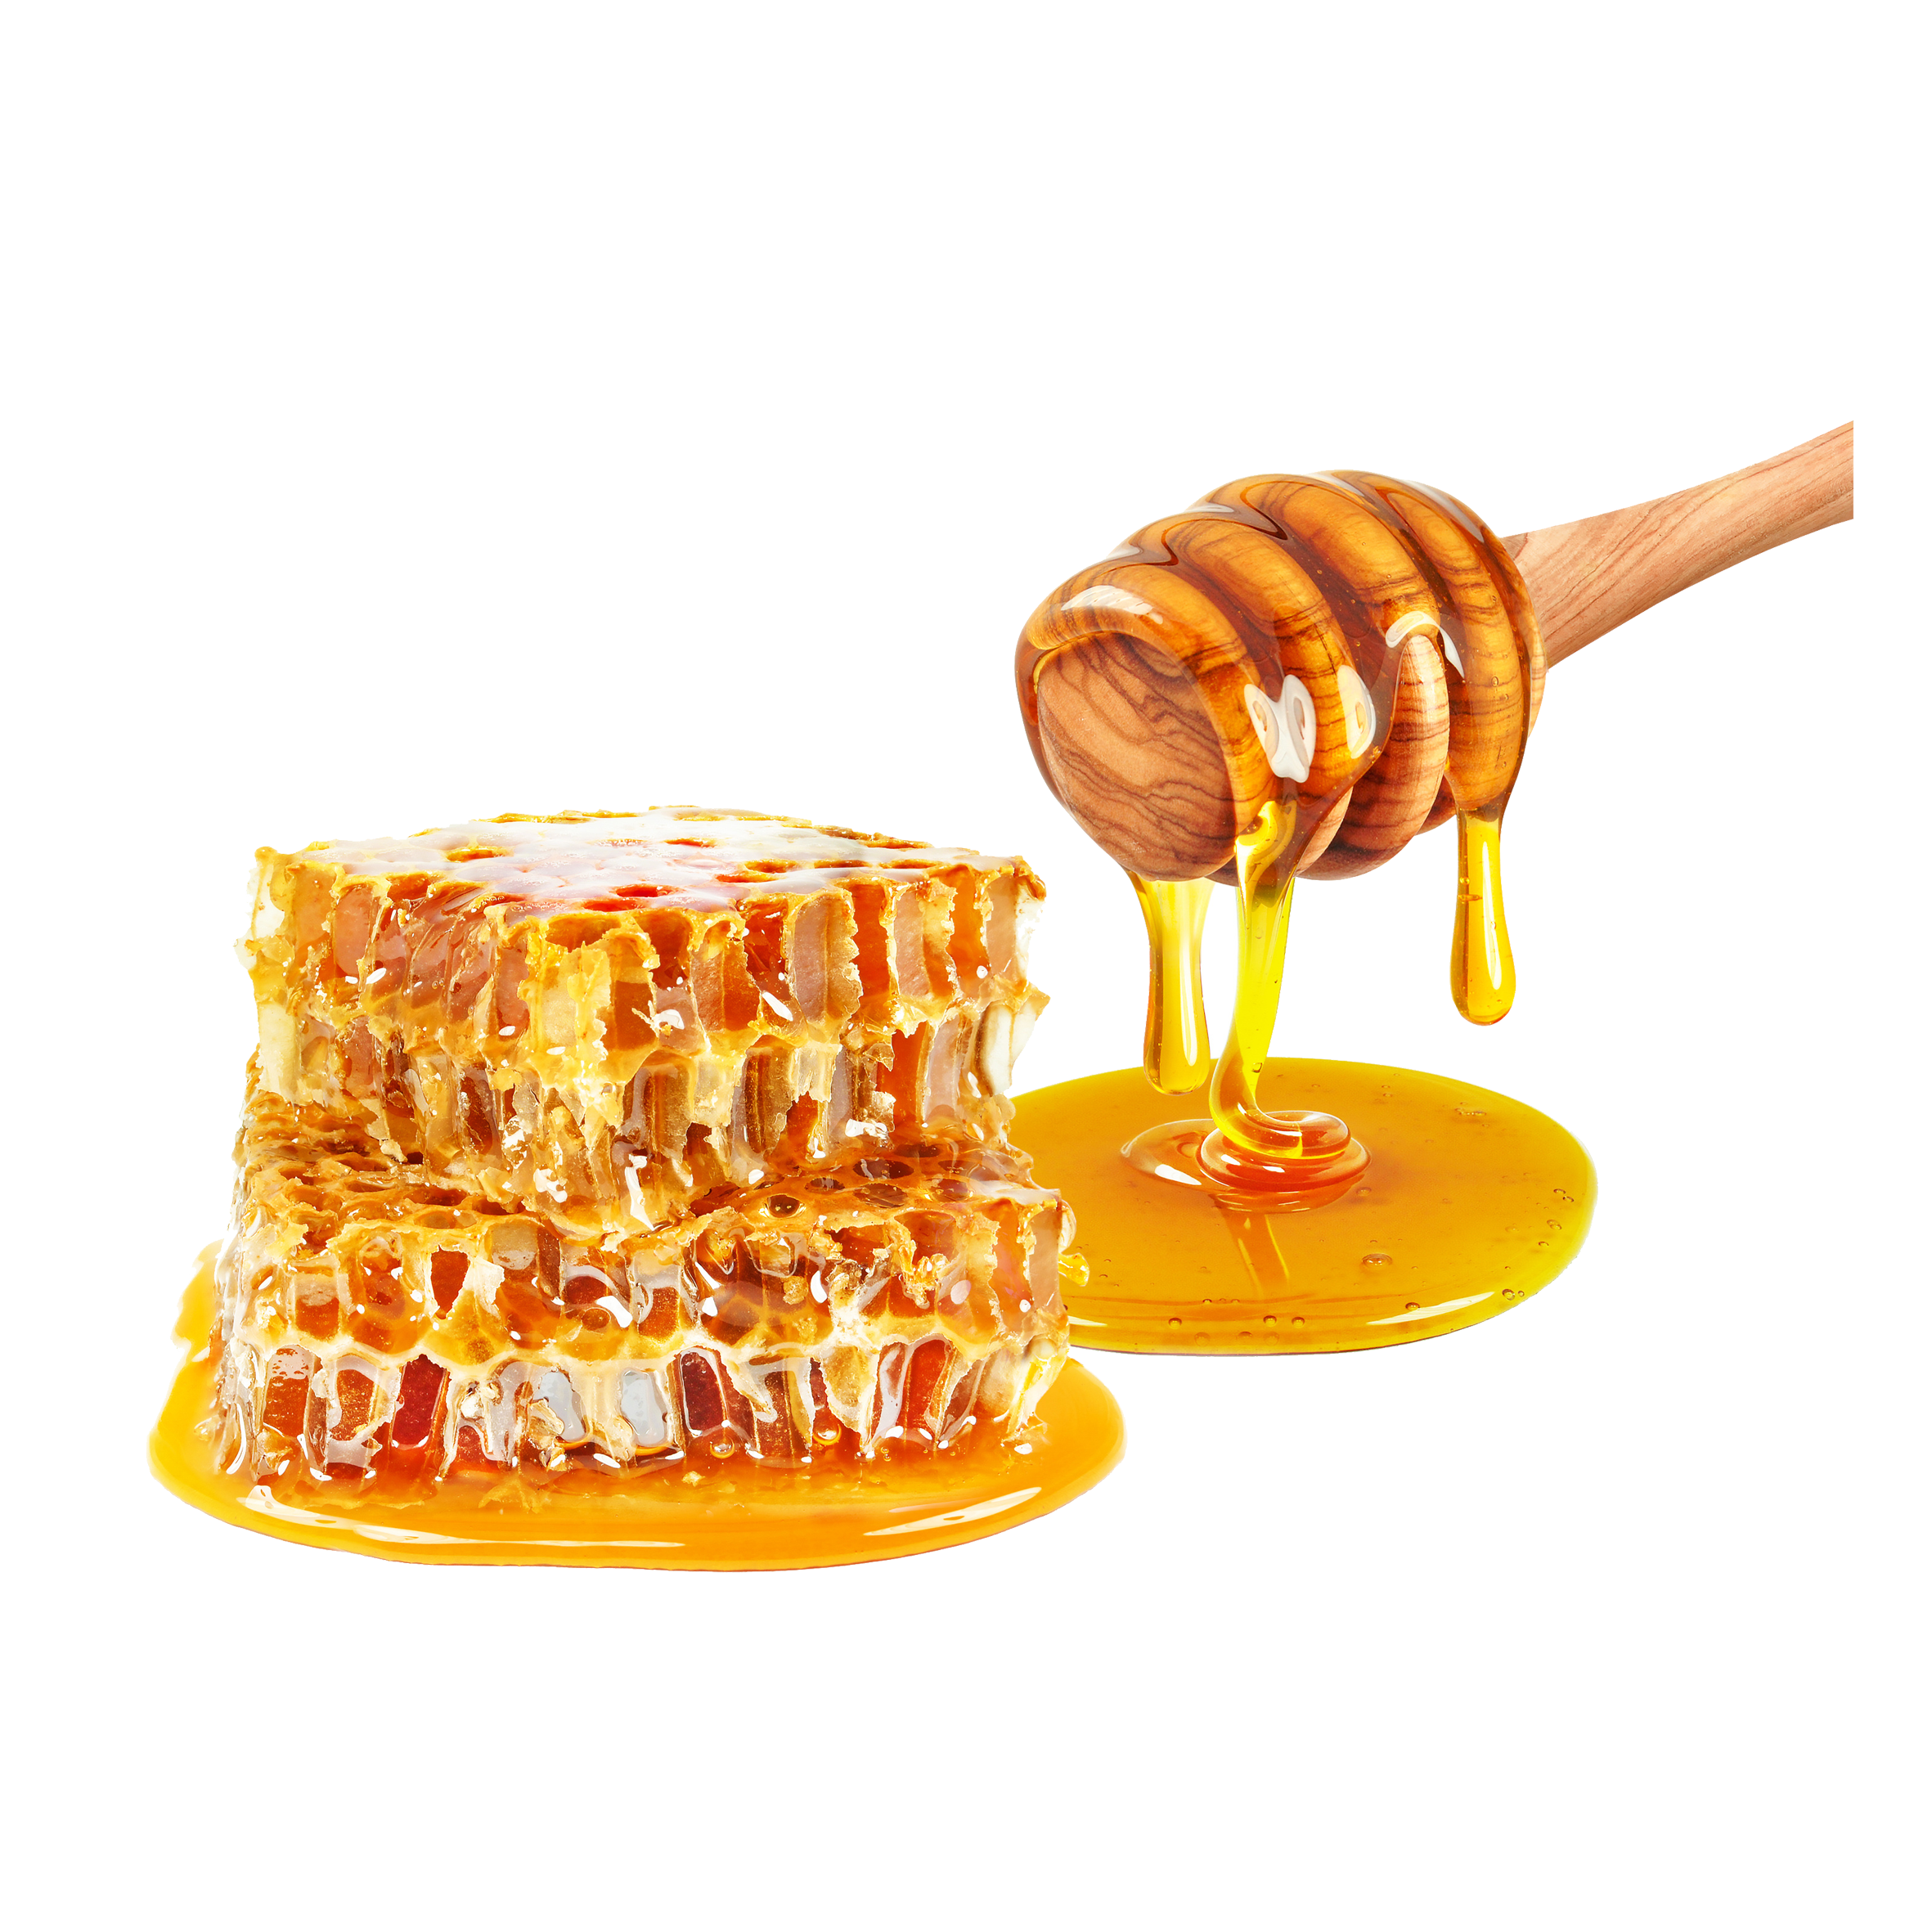 Honey dripping png. Gravy honeycomb food transprent